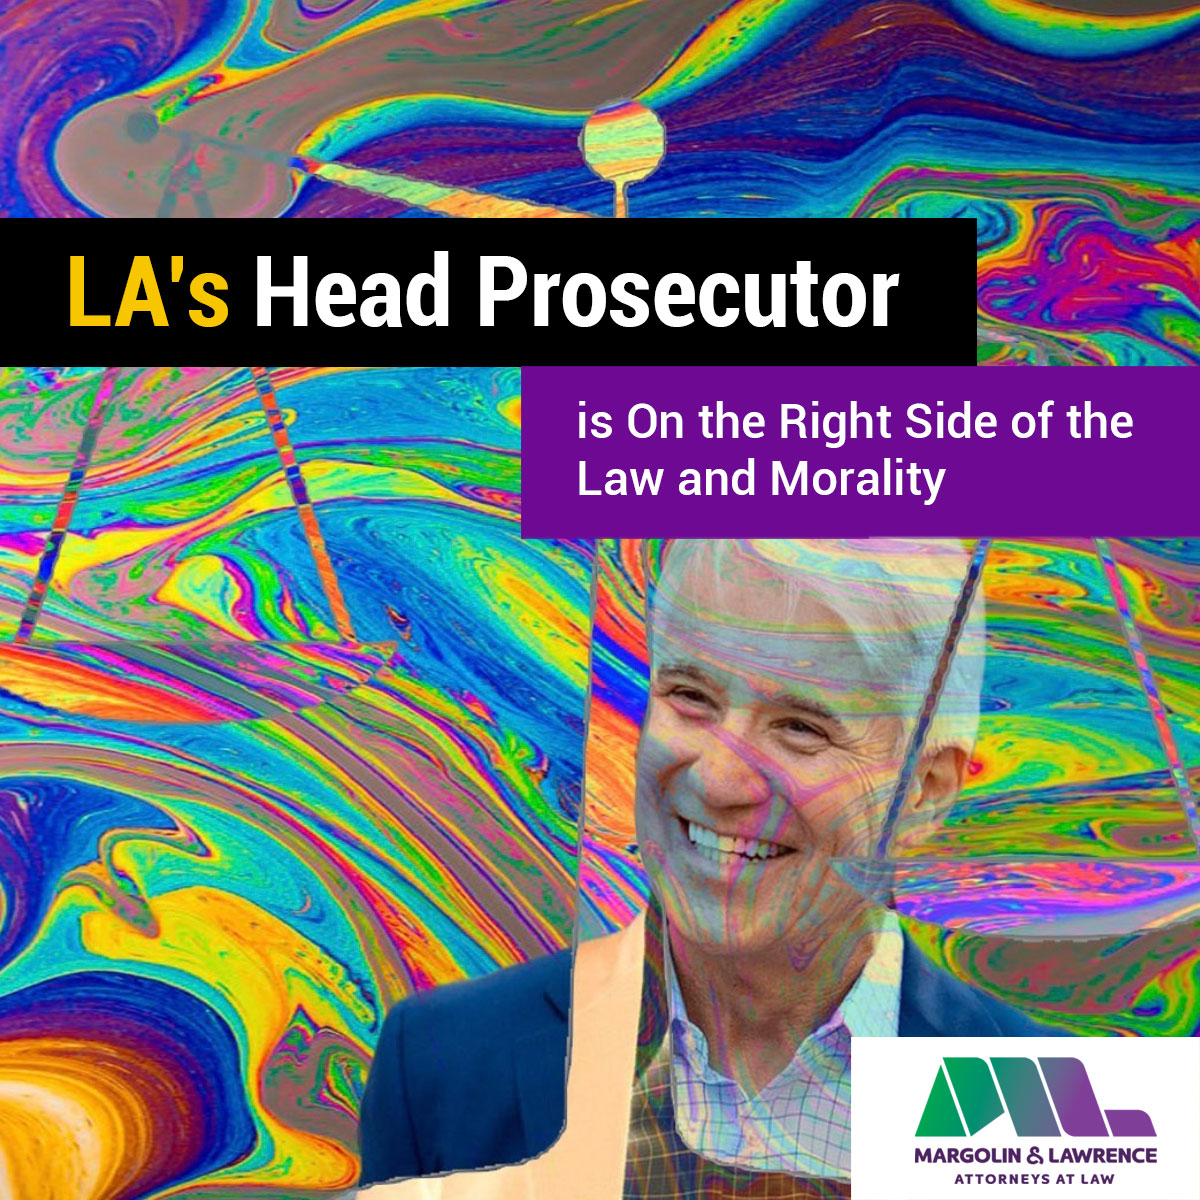 LA's Head Prosecutor is On the Right Side of the Law and Morality